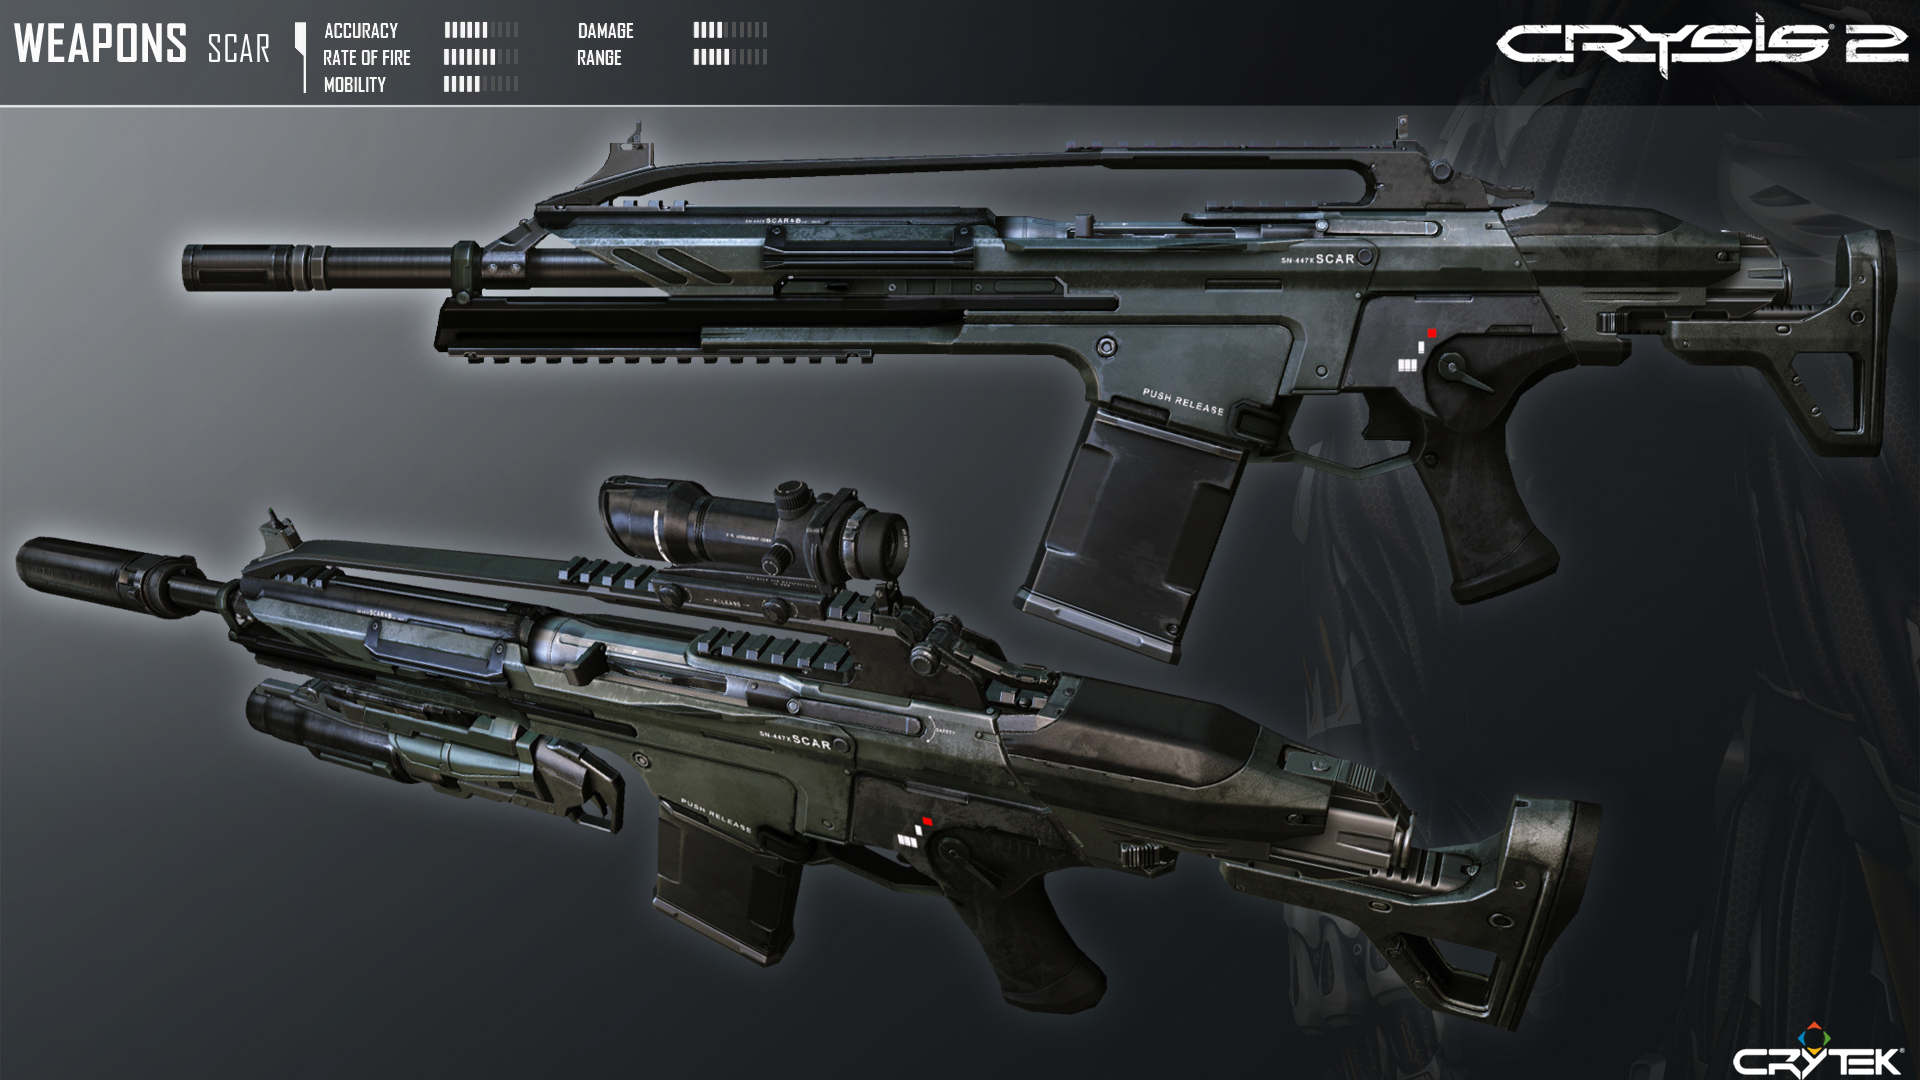 Crysis 2 Mk20 SCAR by Scarlighter